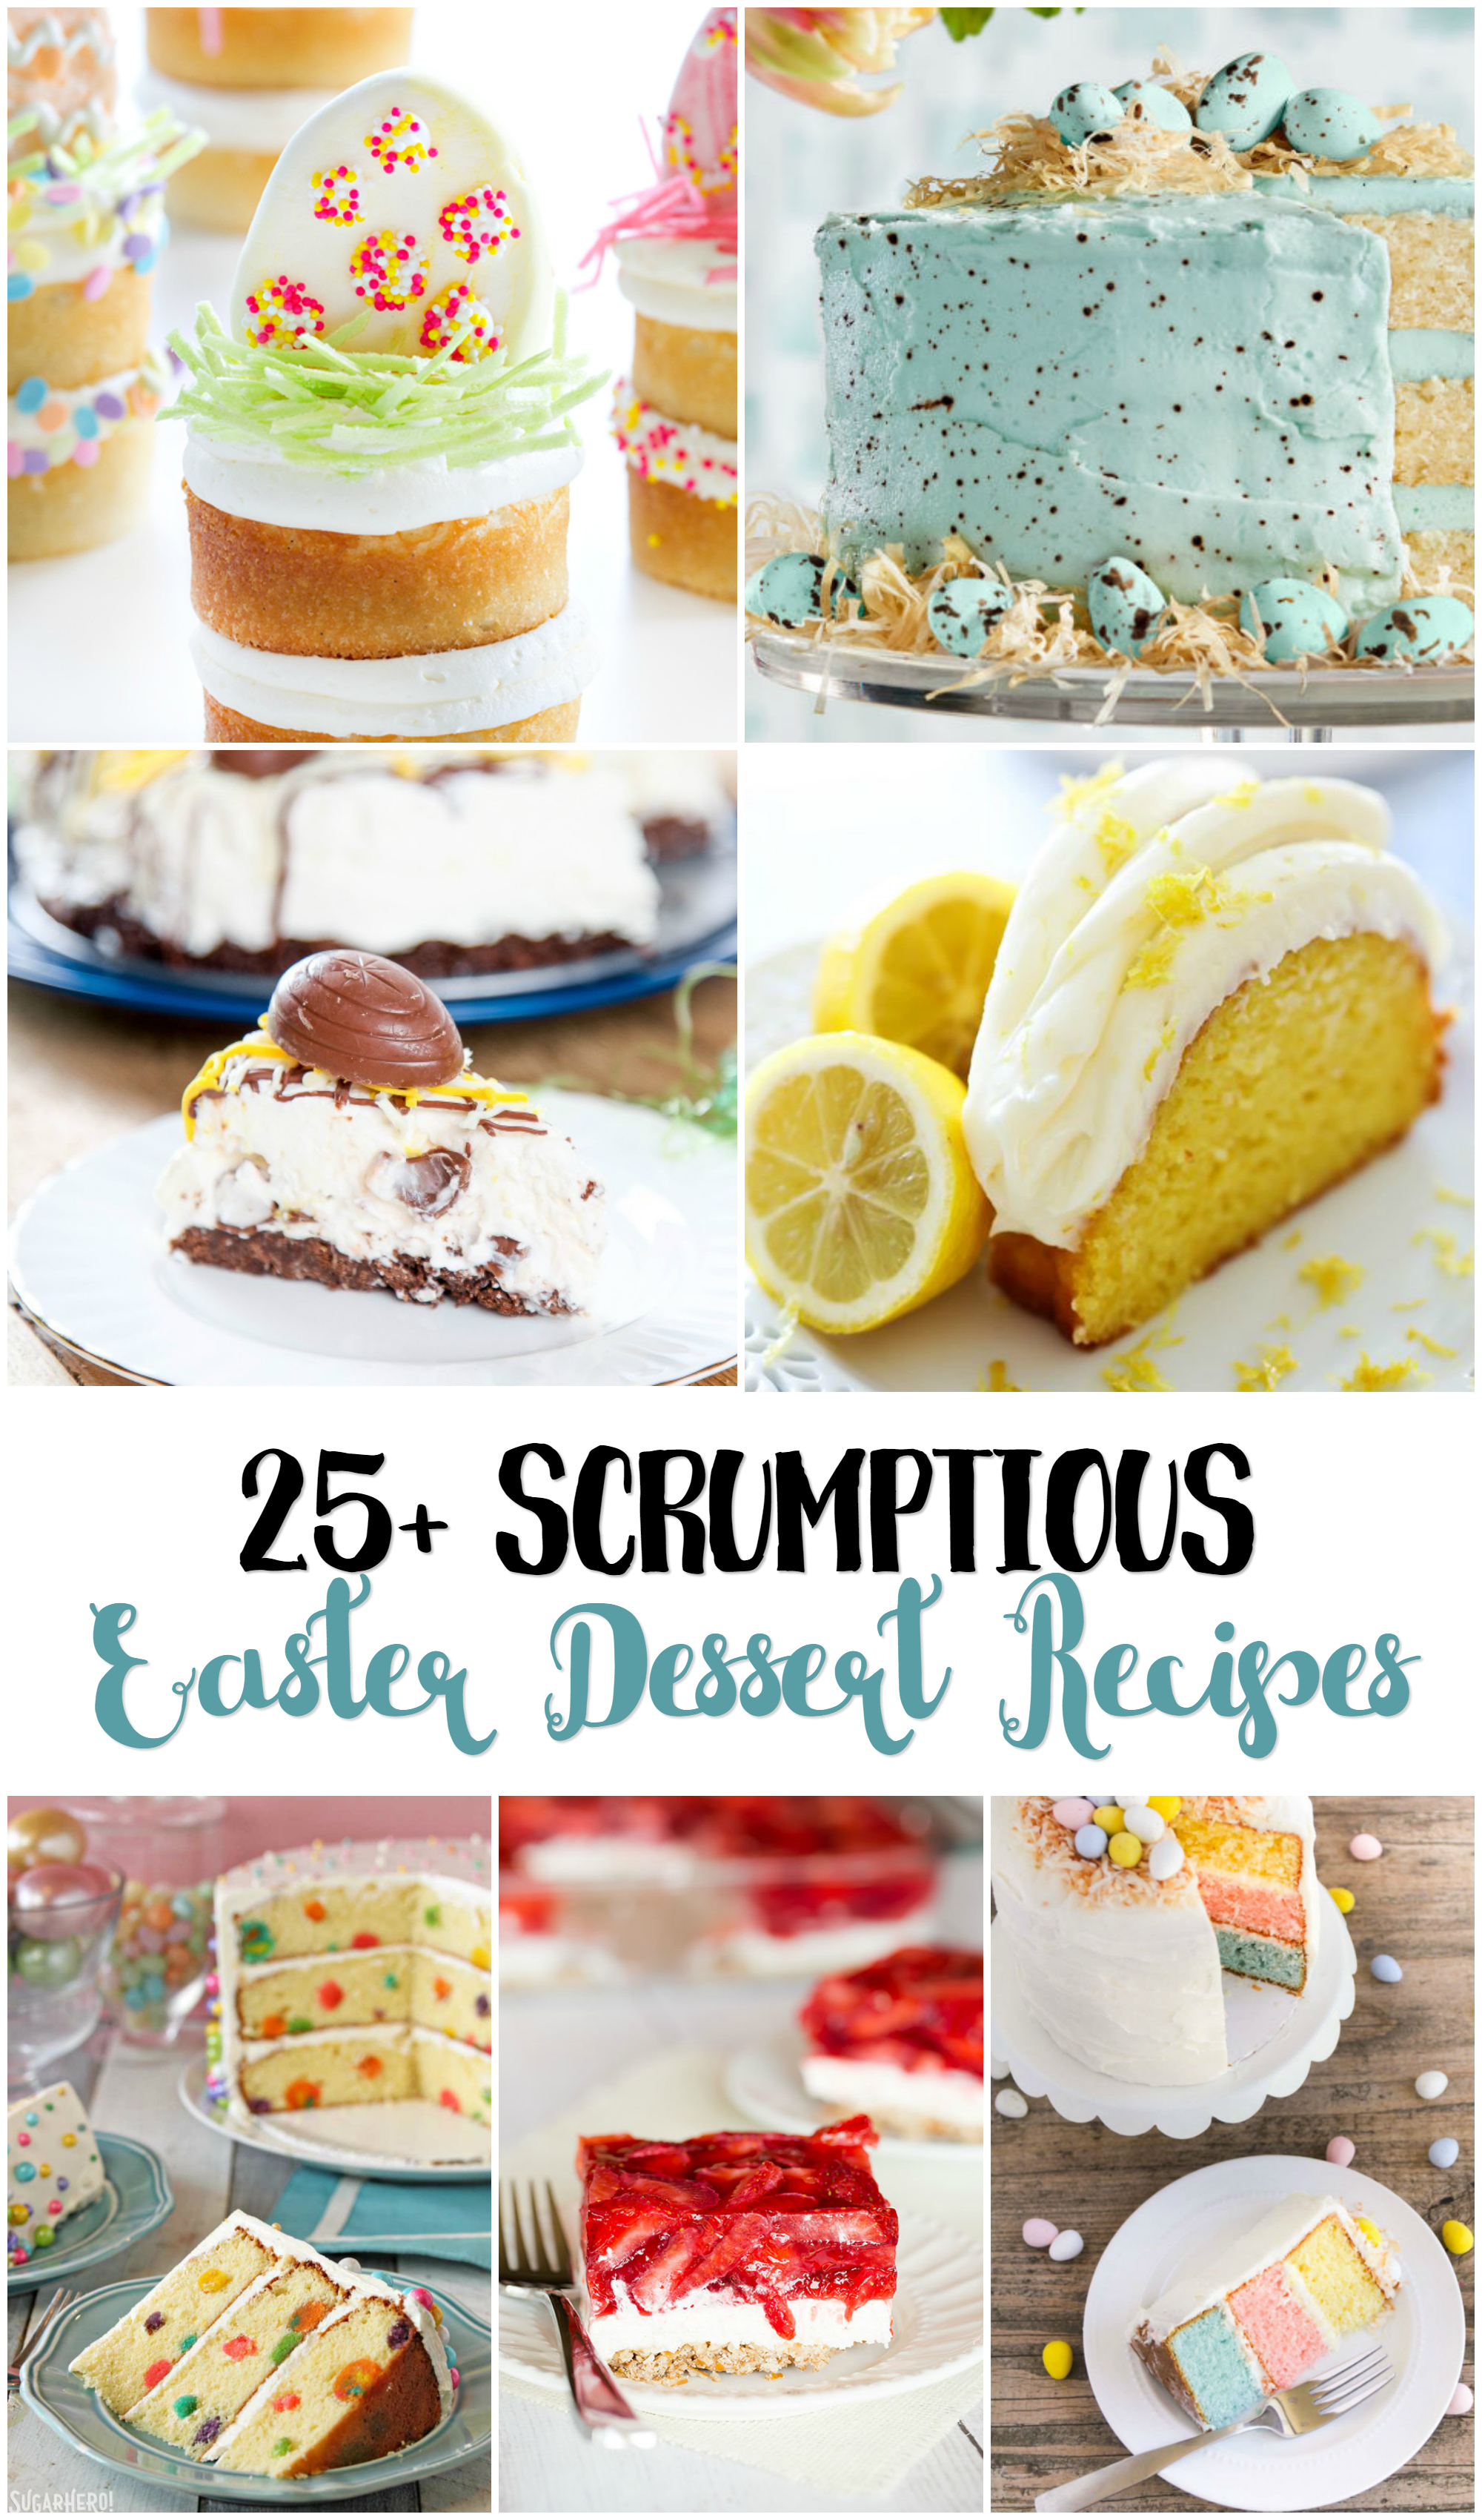 25+ Scrumptious Easter Dessert Recipes